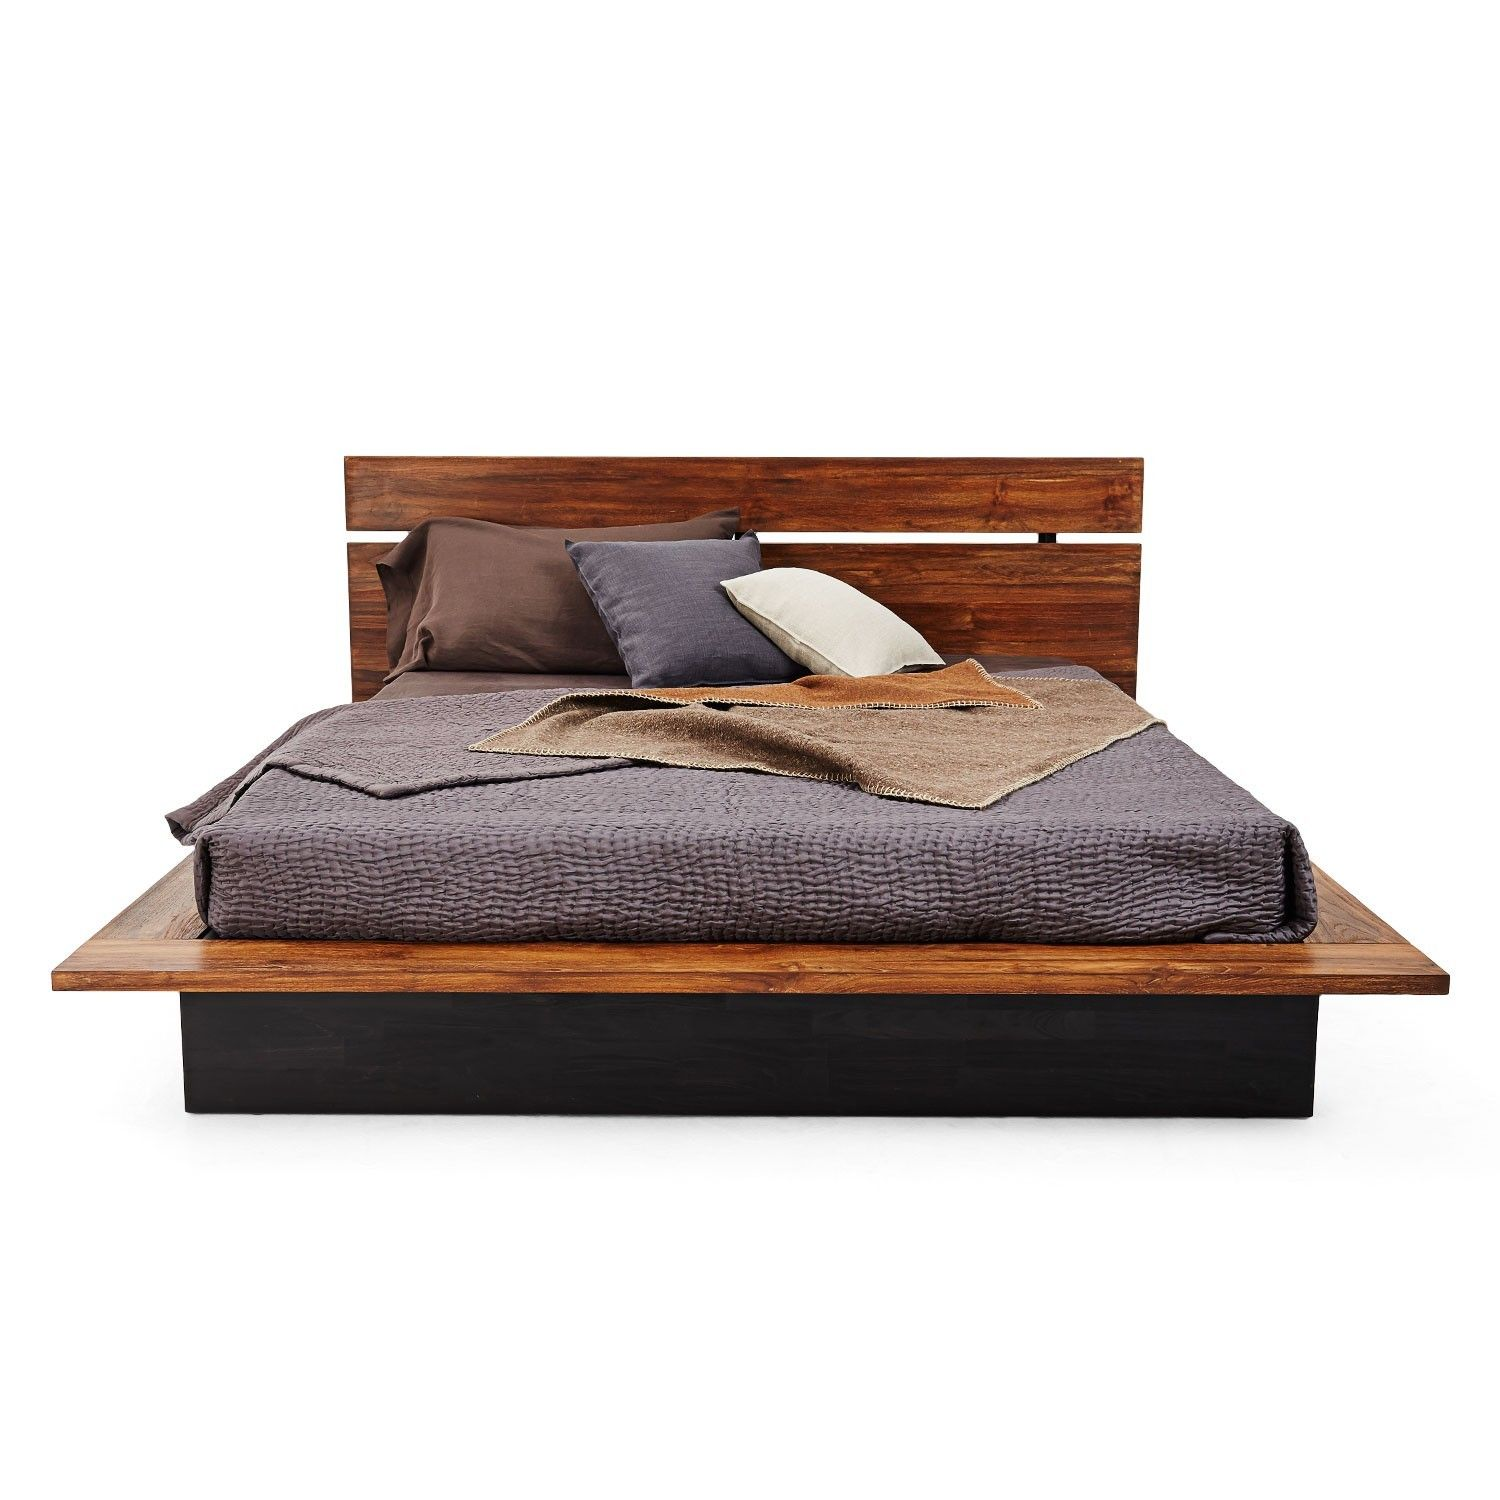 All products bedroom beds amp headboards headboards - Modern Black Stained Teak Wood Bed Frame Mixed With Brown Lacquer Bed Board Using Dark Gray